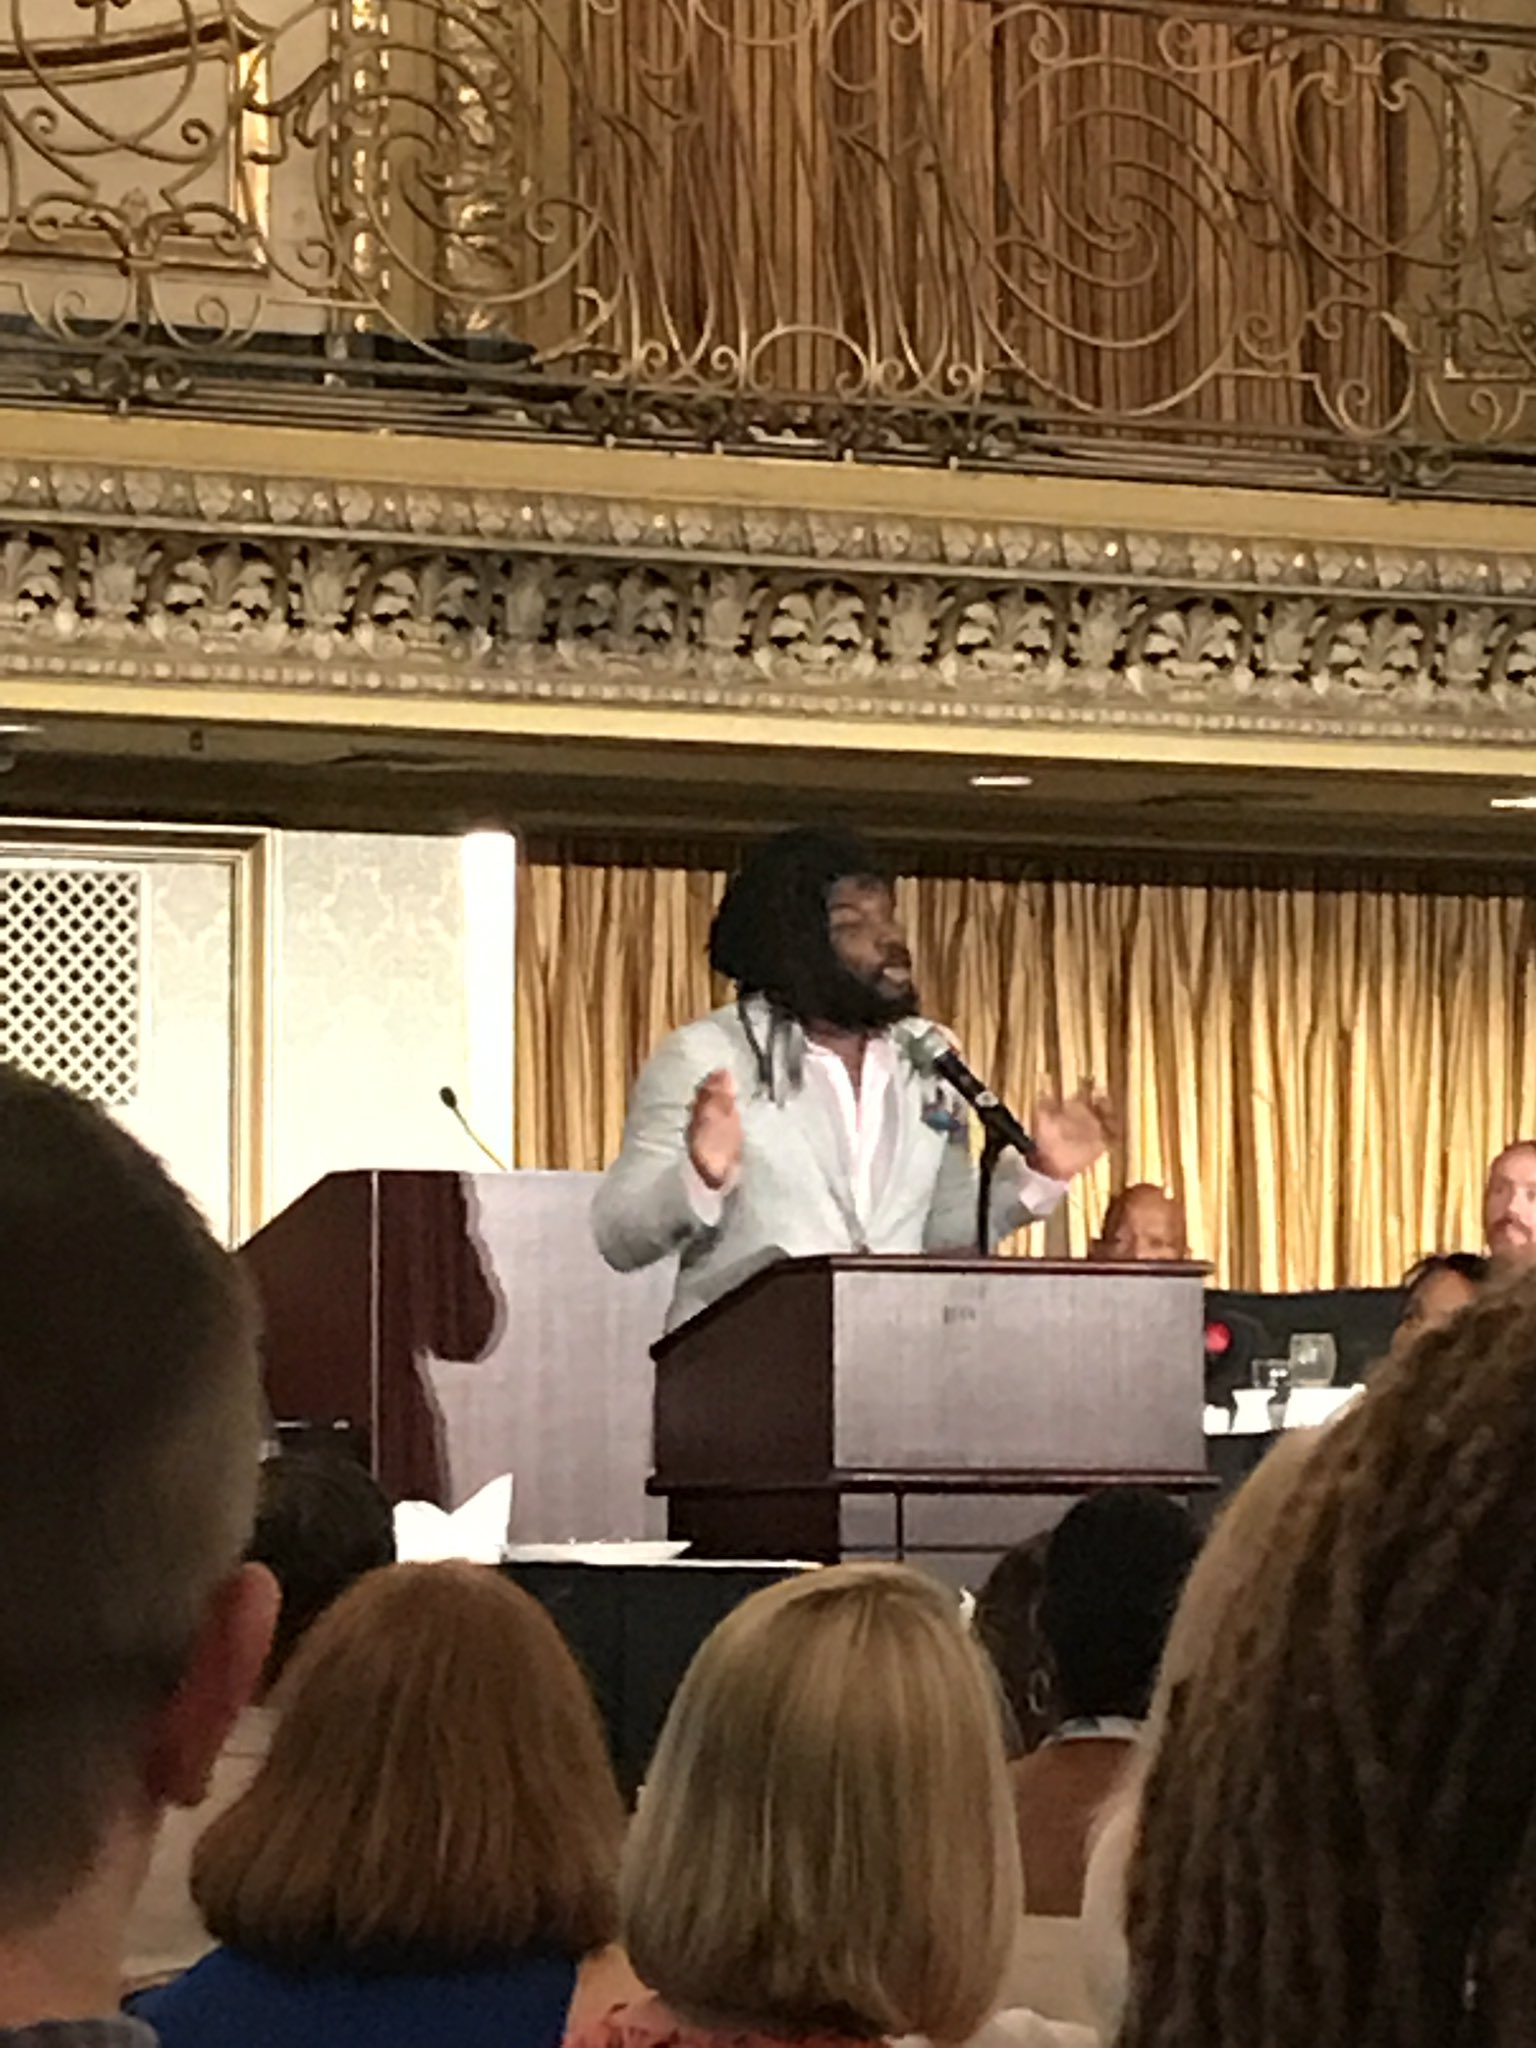 How does @JasonReynolds83 talk about a potato and bring me to tears? 😭#ALAAC17 #corettascottking https://t.co/upLlBjyKhA